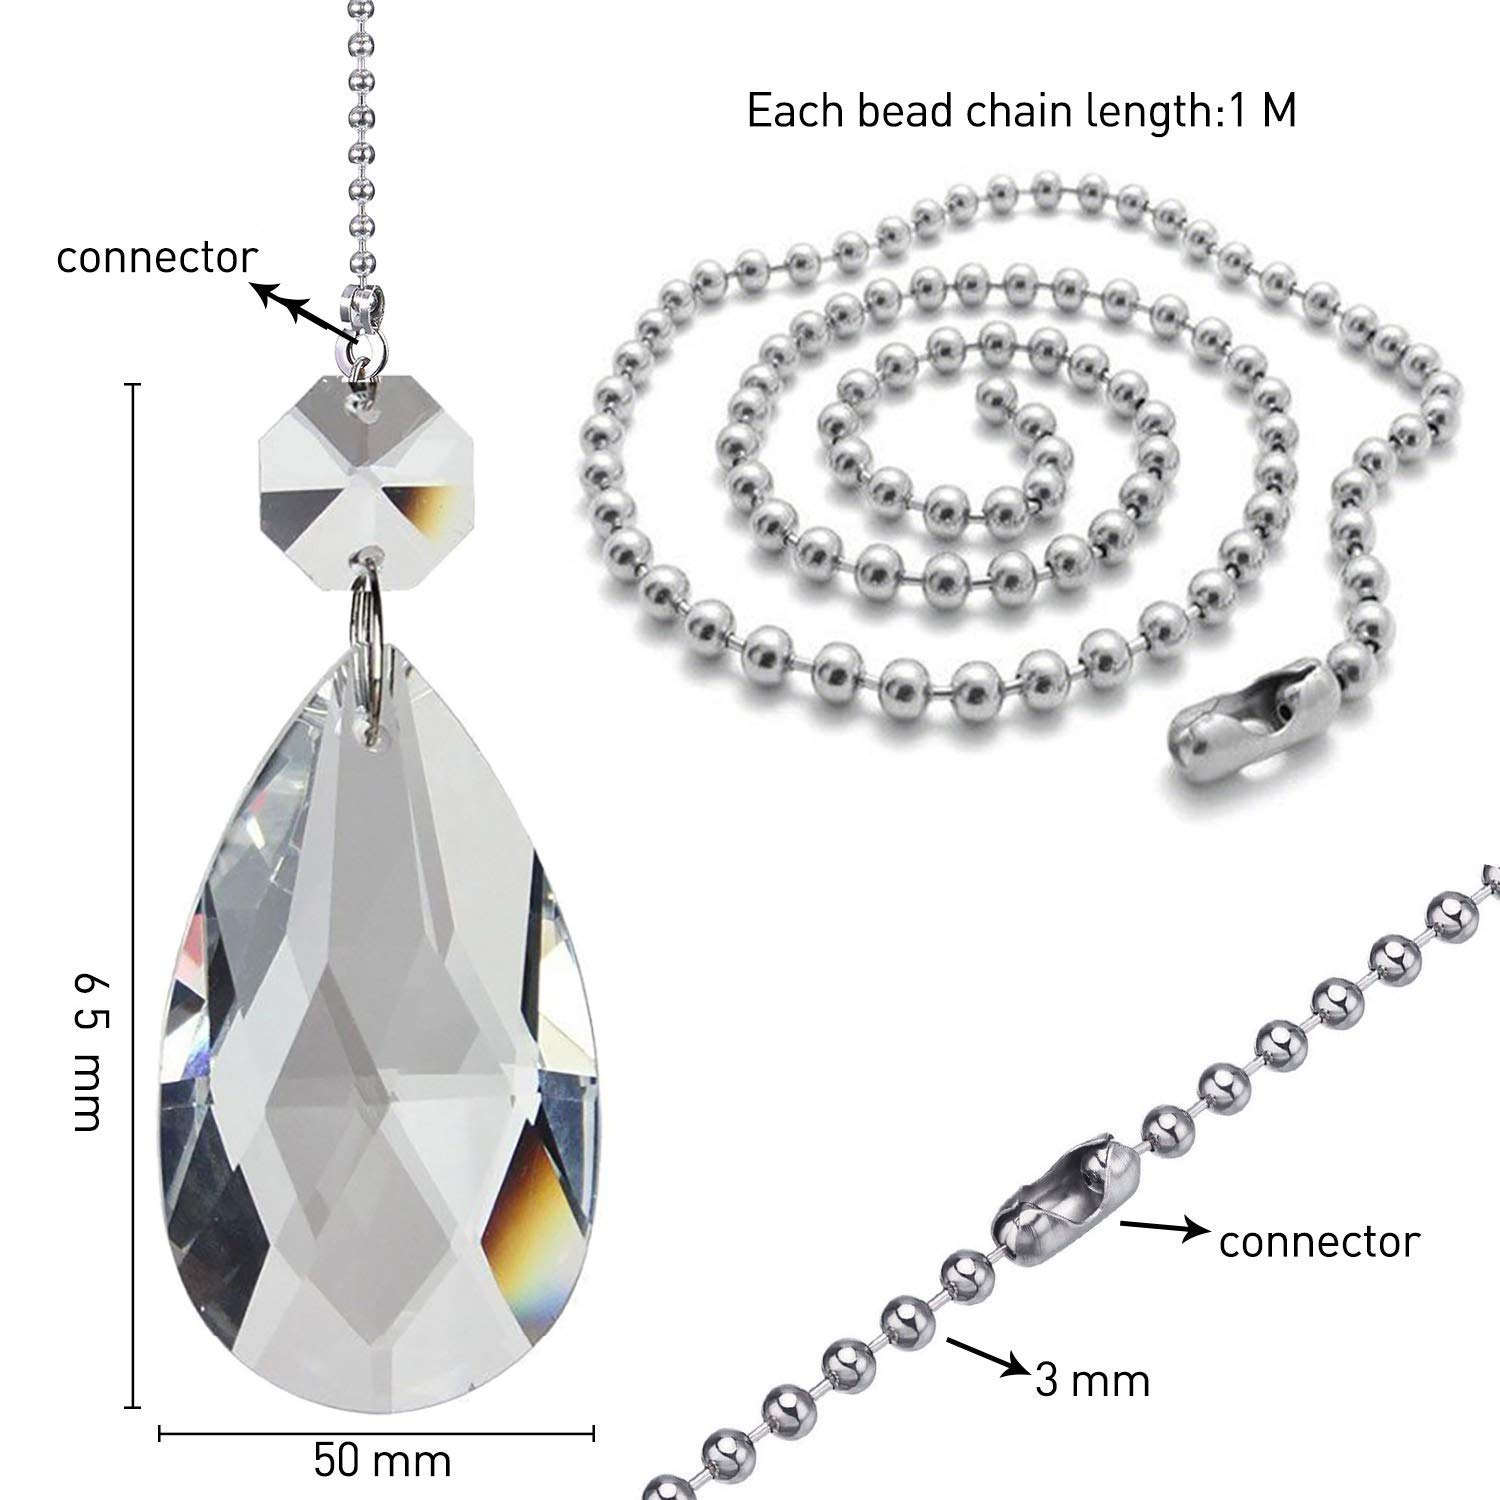 Jovitec 2 Pack Clear Cone Crystal Pull Chain Extension with Connector for Ceiling Light Fan Chain 1 Meter Long Each Chain